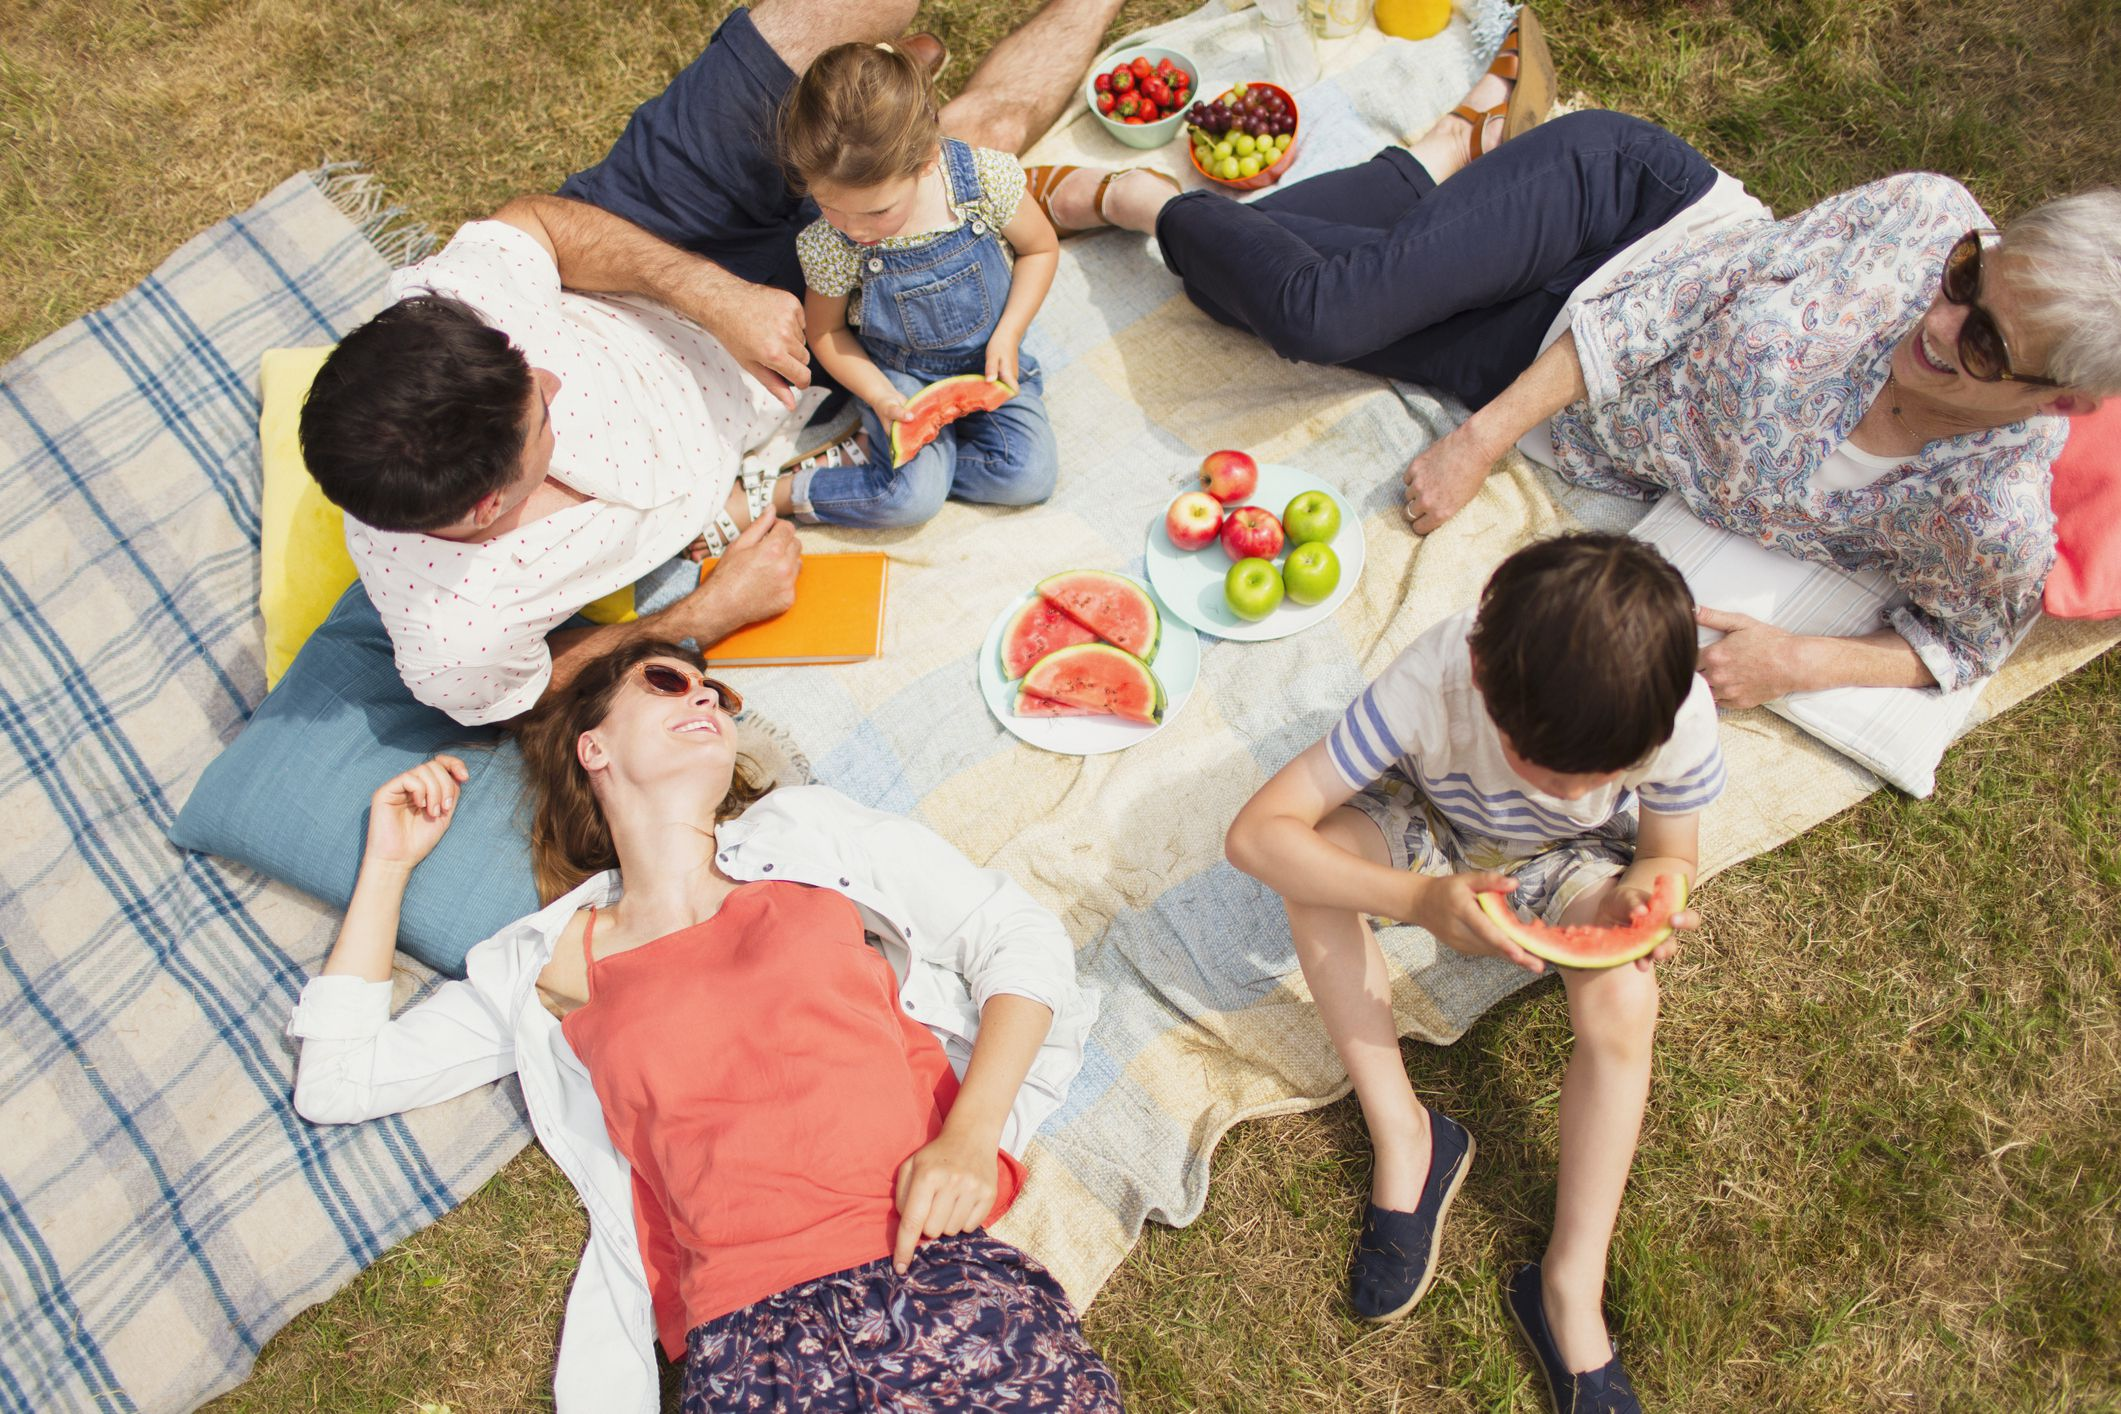 4 Simple Picnic Ideas for Families